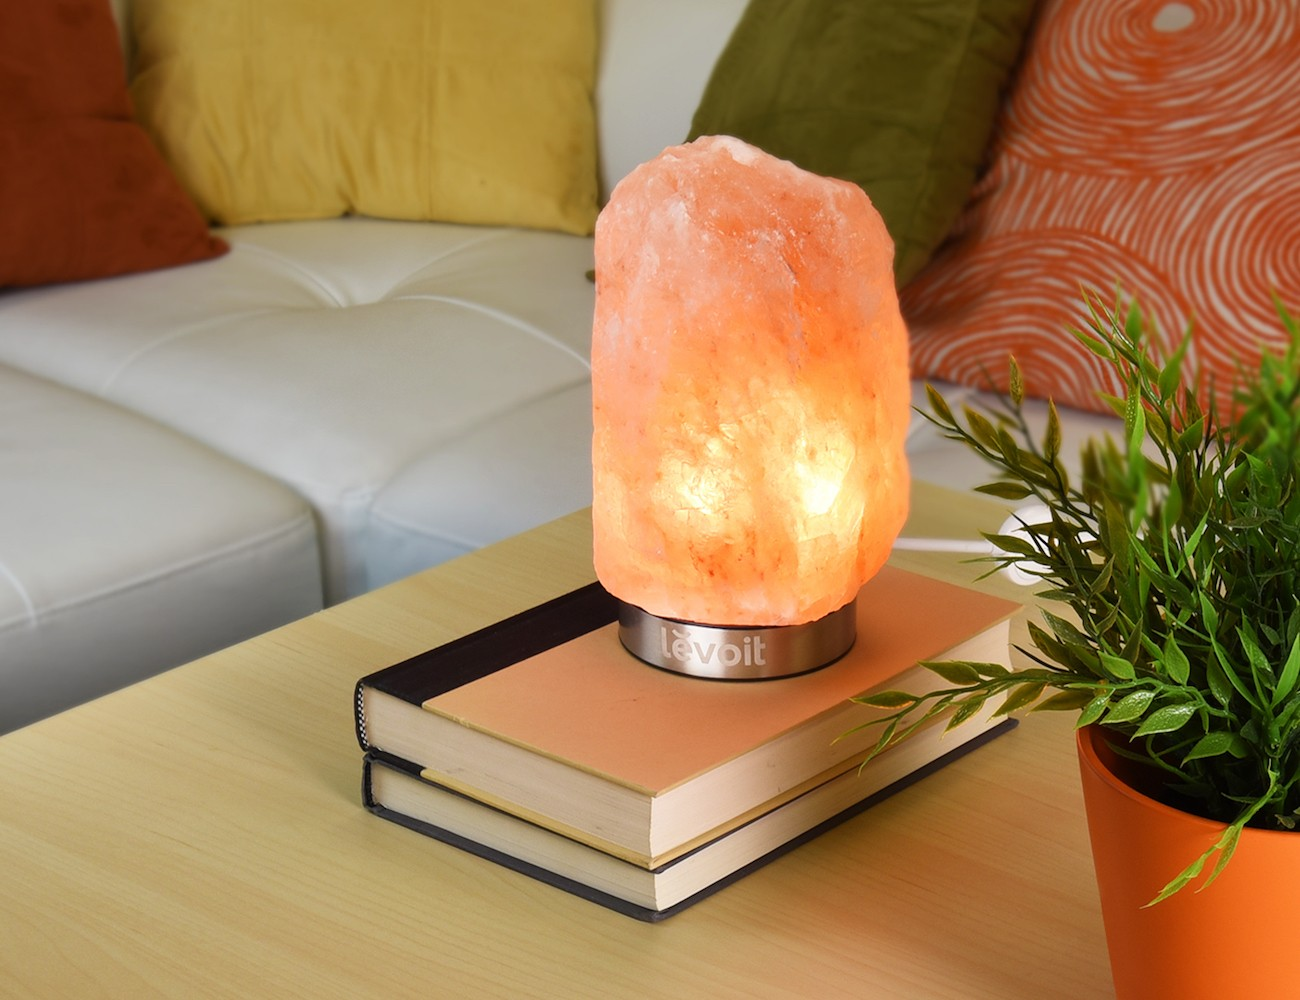 Himalayan Salt Lamps Purpose : Levoit Elora Himalayan Crystal Salt Lamp Gadget Flow